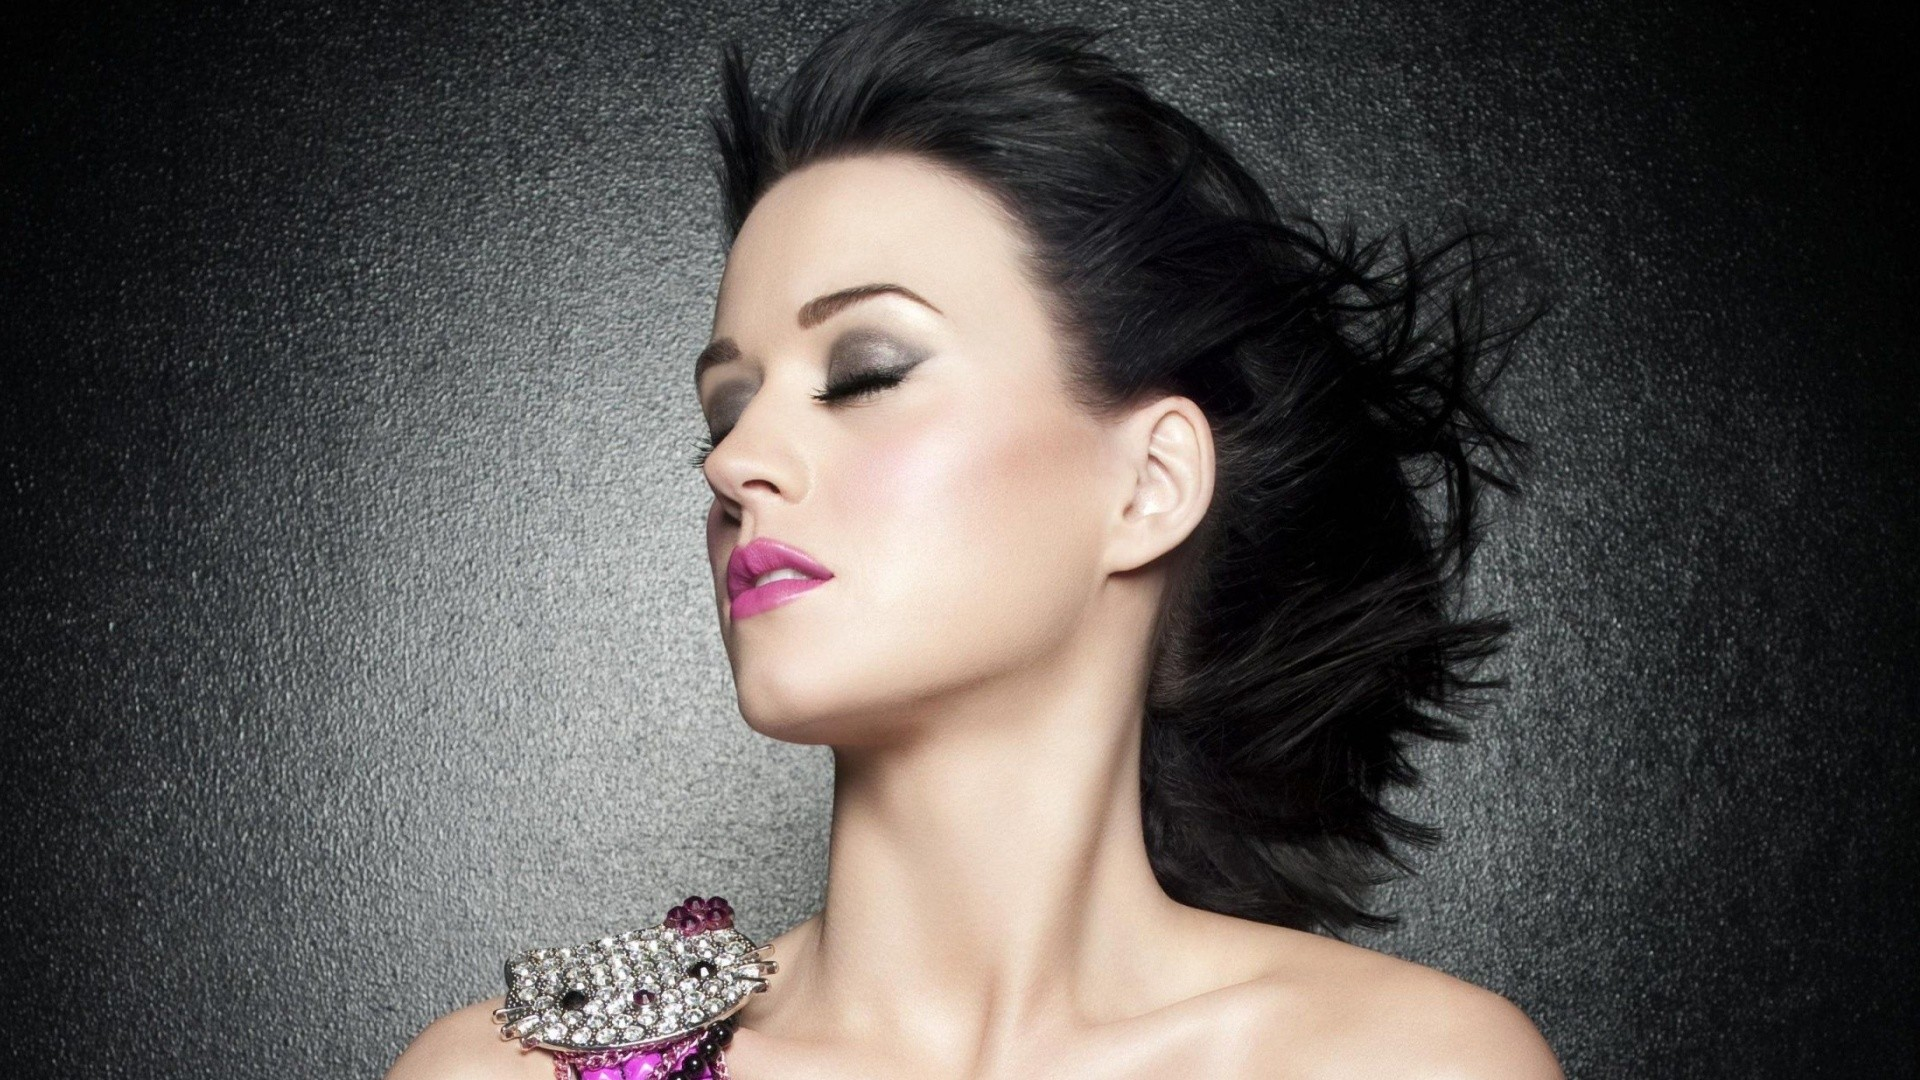 Katy Perry High Definition Wallpaper – Wallpaper, High Definition .